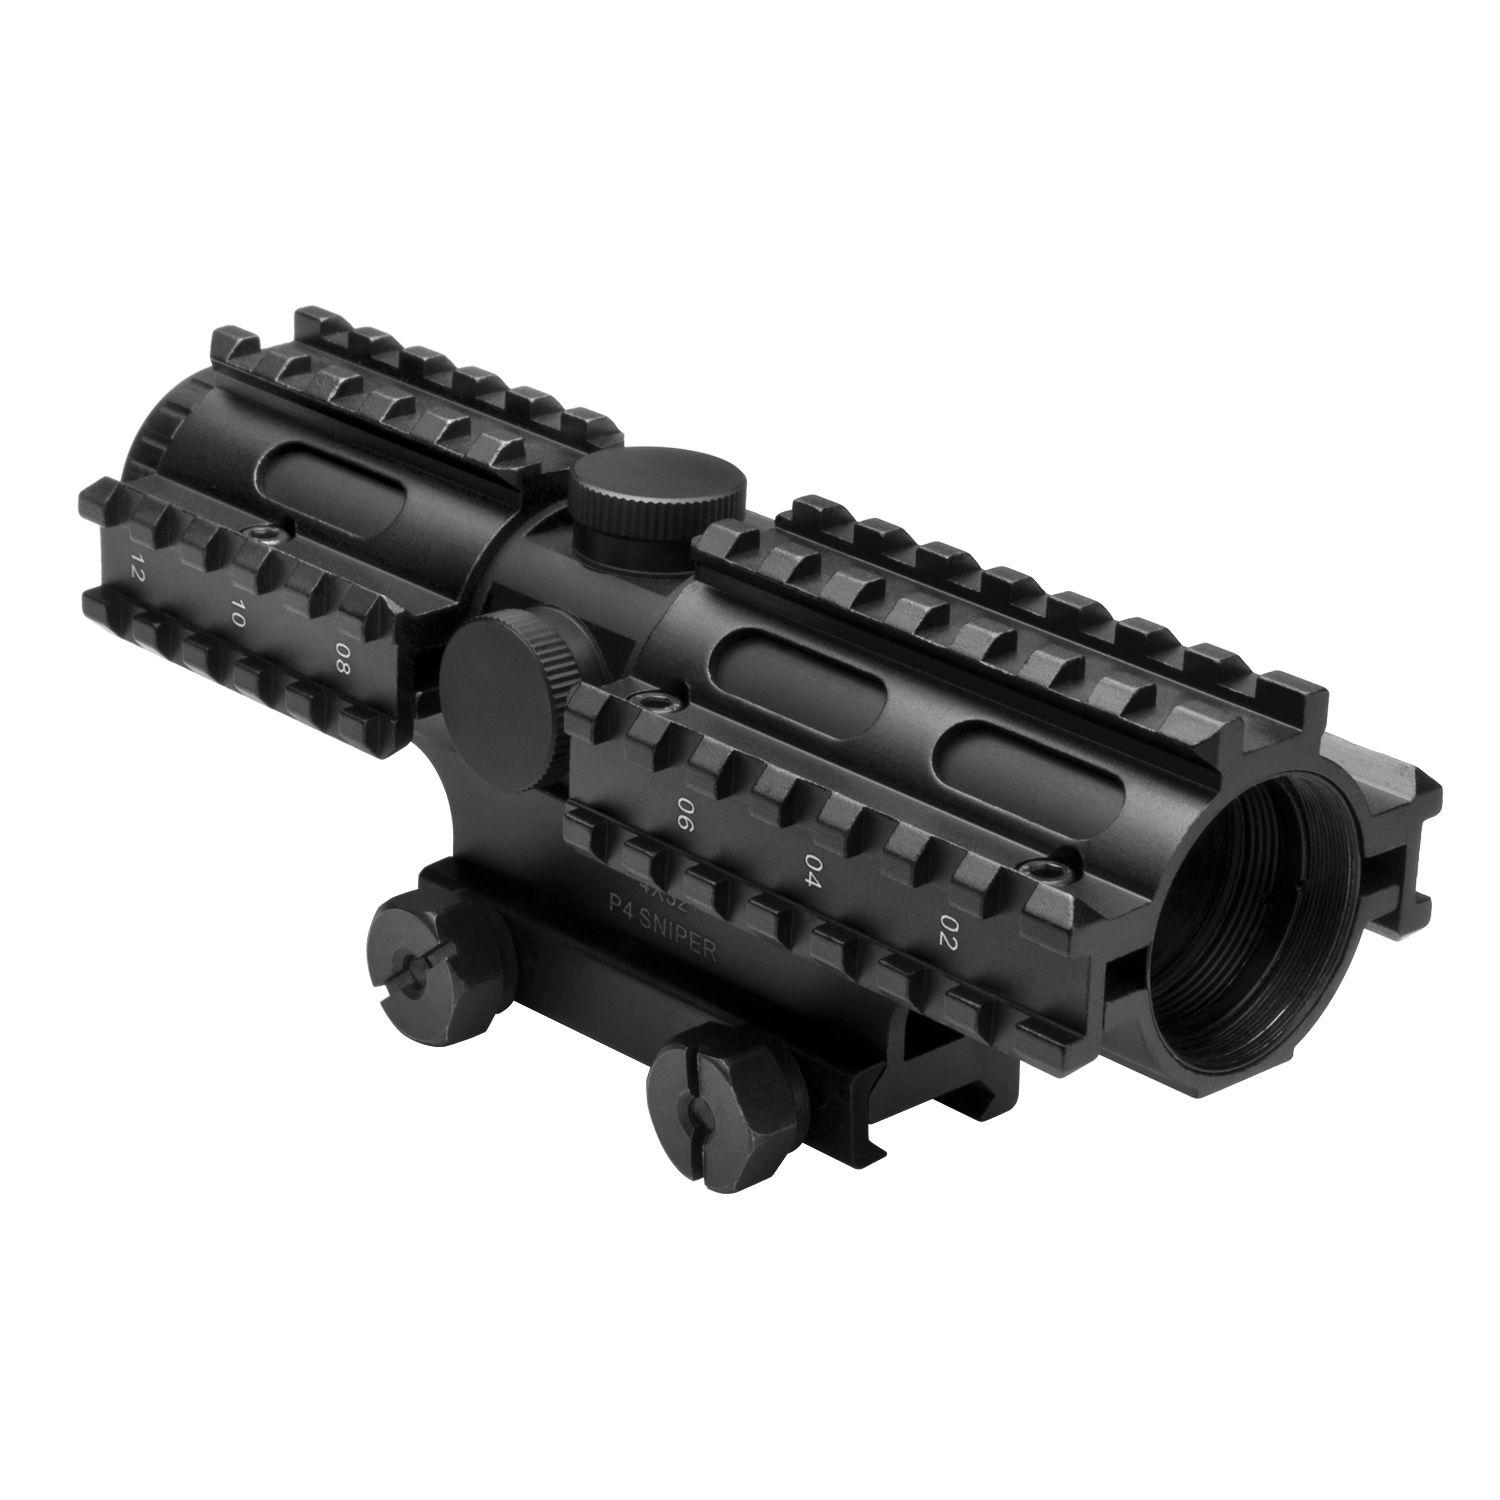 Ncstar Tri-Rail Series Compact P4 Sniper Rifle Scope